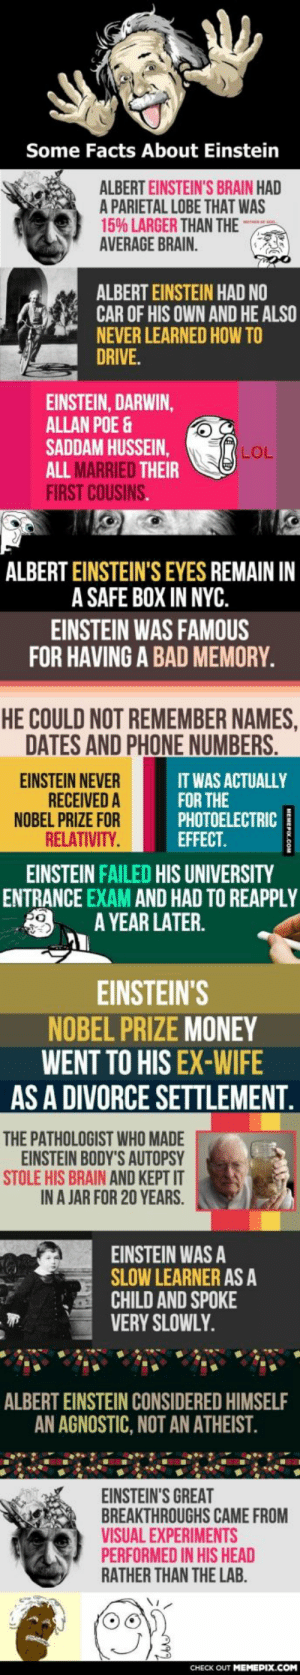 Some Facts About Einsteinomg-humor.tumblr.com: Some Facts About Einstein  ALBERT EINSTEIN'S BRAIN HAD  A PARIETAL LOBE THAT WAS  15% LARGER THAN THE  AVERAGE BRAIN.  ALBERT EINSTEIN HAD NO  CAR OF HIS OWN AND HE ALSO  NEVER LEARNED HOW TO  DRIVE.  EINSTEIN, DARWIN,  ALLAN POE &  SADDAM HUSSEIN,  ALL MARRIED THEIR  FIRST COUSINS.  LOL  ALBERT EINSTEIN'S EYES REMAIN IN  A SAFE BOX IN NYC.  EINSTEIN WAS FAMOUS  FOR HAVING A BAD MEMORY.  HE COULD NOT REMEMBER NAMES,  DATES AND PHONE NUMBERS.  IT WAS ACTUALLY  FOR THE  PHOTOELECTRIC  EFFECT.  EINSTEIN NEVER  RECEIVED A  NOBEL PRIZE FOR  RELATIVITY.  EINSTEIN FAILED HIS UNIVERSITY  ENTRANCE EXAM AND HAD TO REAPPLY  A YEAR LATER.  EINSTEIN'S  NOBEL PRIZE MONEY  WENT TO HIS EX-WIFE  AS A DIVORCE SETTLEMENT.  THE PATHOLOGIST WHO MADE  EINSTEIN BODY'S AUTOPSY  STOLE HIS BRAIN AND KEPT IT  IN A JAR FOR 20 YEARS.  EINSTEIN WAS A  SLOW LEARNER AS A  CHILD AND SPOKE  VERY SLOWLY.  ALBERT EINSTEIN CONSIDERED HIMSELF  AN AGNOSTIC, NOT AN ATHEIST.  EINSTEIN'S GREAT  BREAKTHROUGHS CAME FROM  VISUAL EXPERIMENTS  PERFORMED IN HIS HEAD  RATHER THAN THE LAB.  CHECK OUT MEMEPIX.COM Some Facts About Einsteinomg-humor.tumblr.com